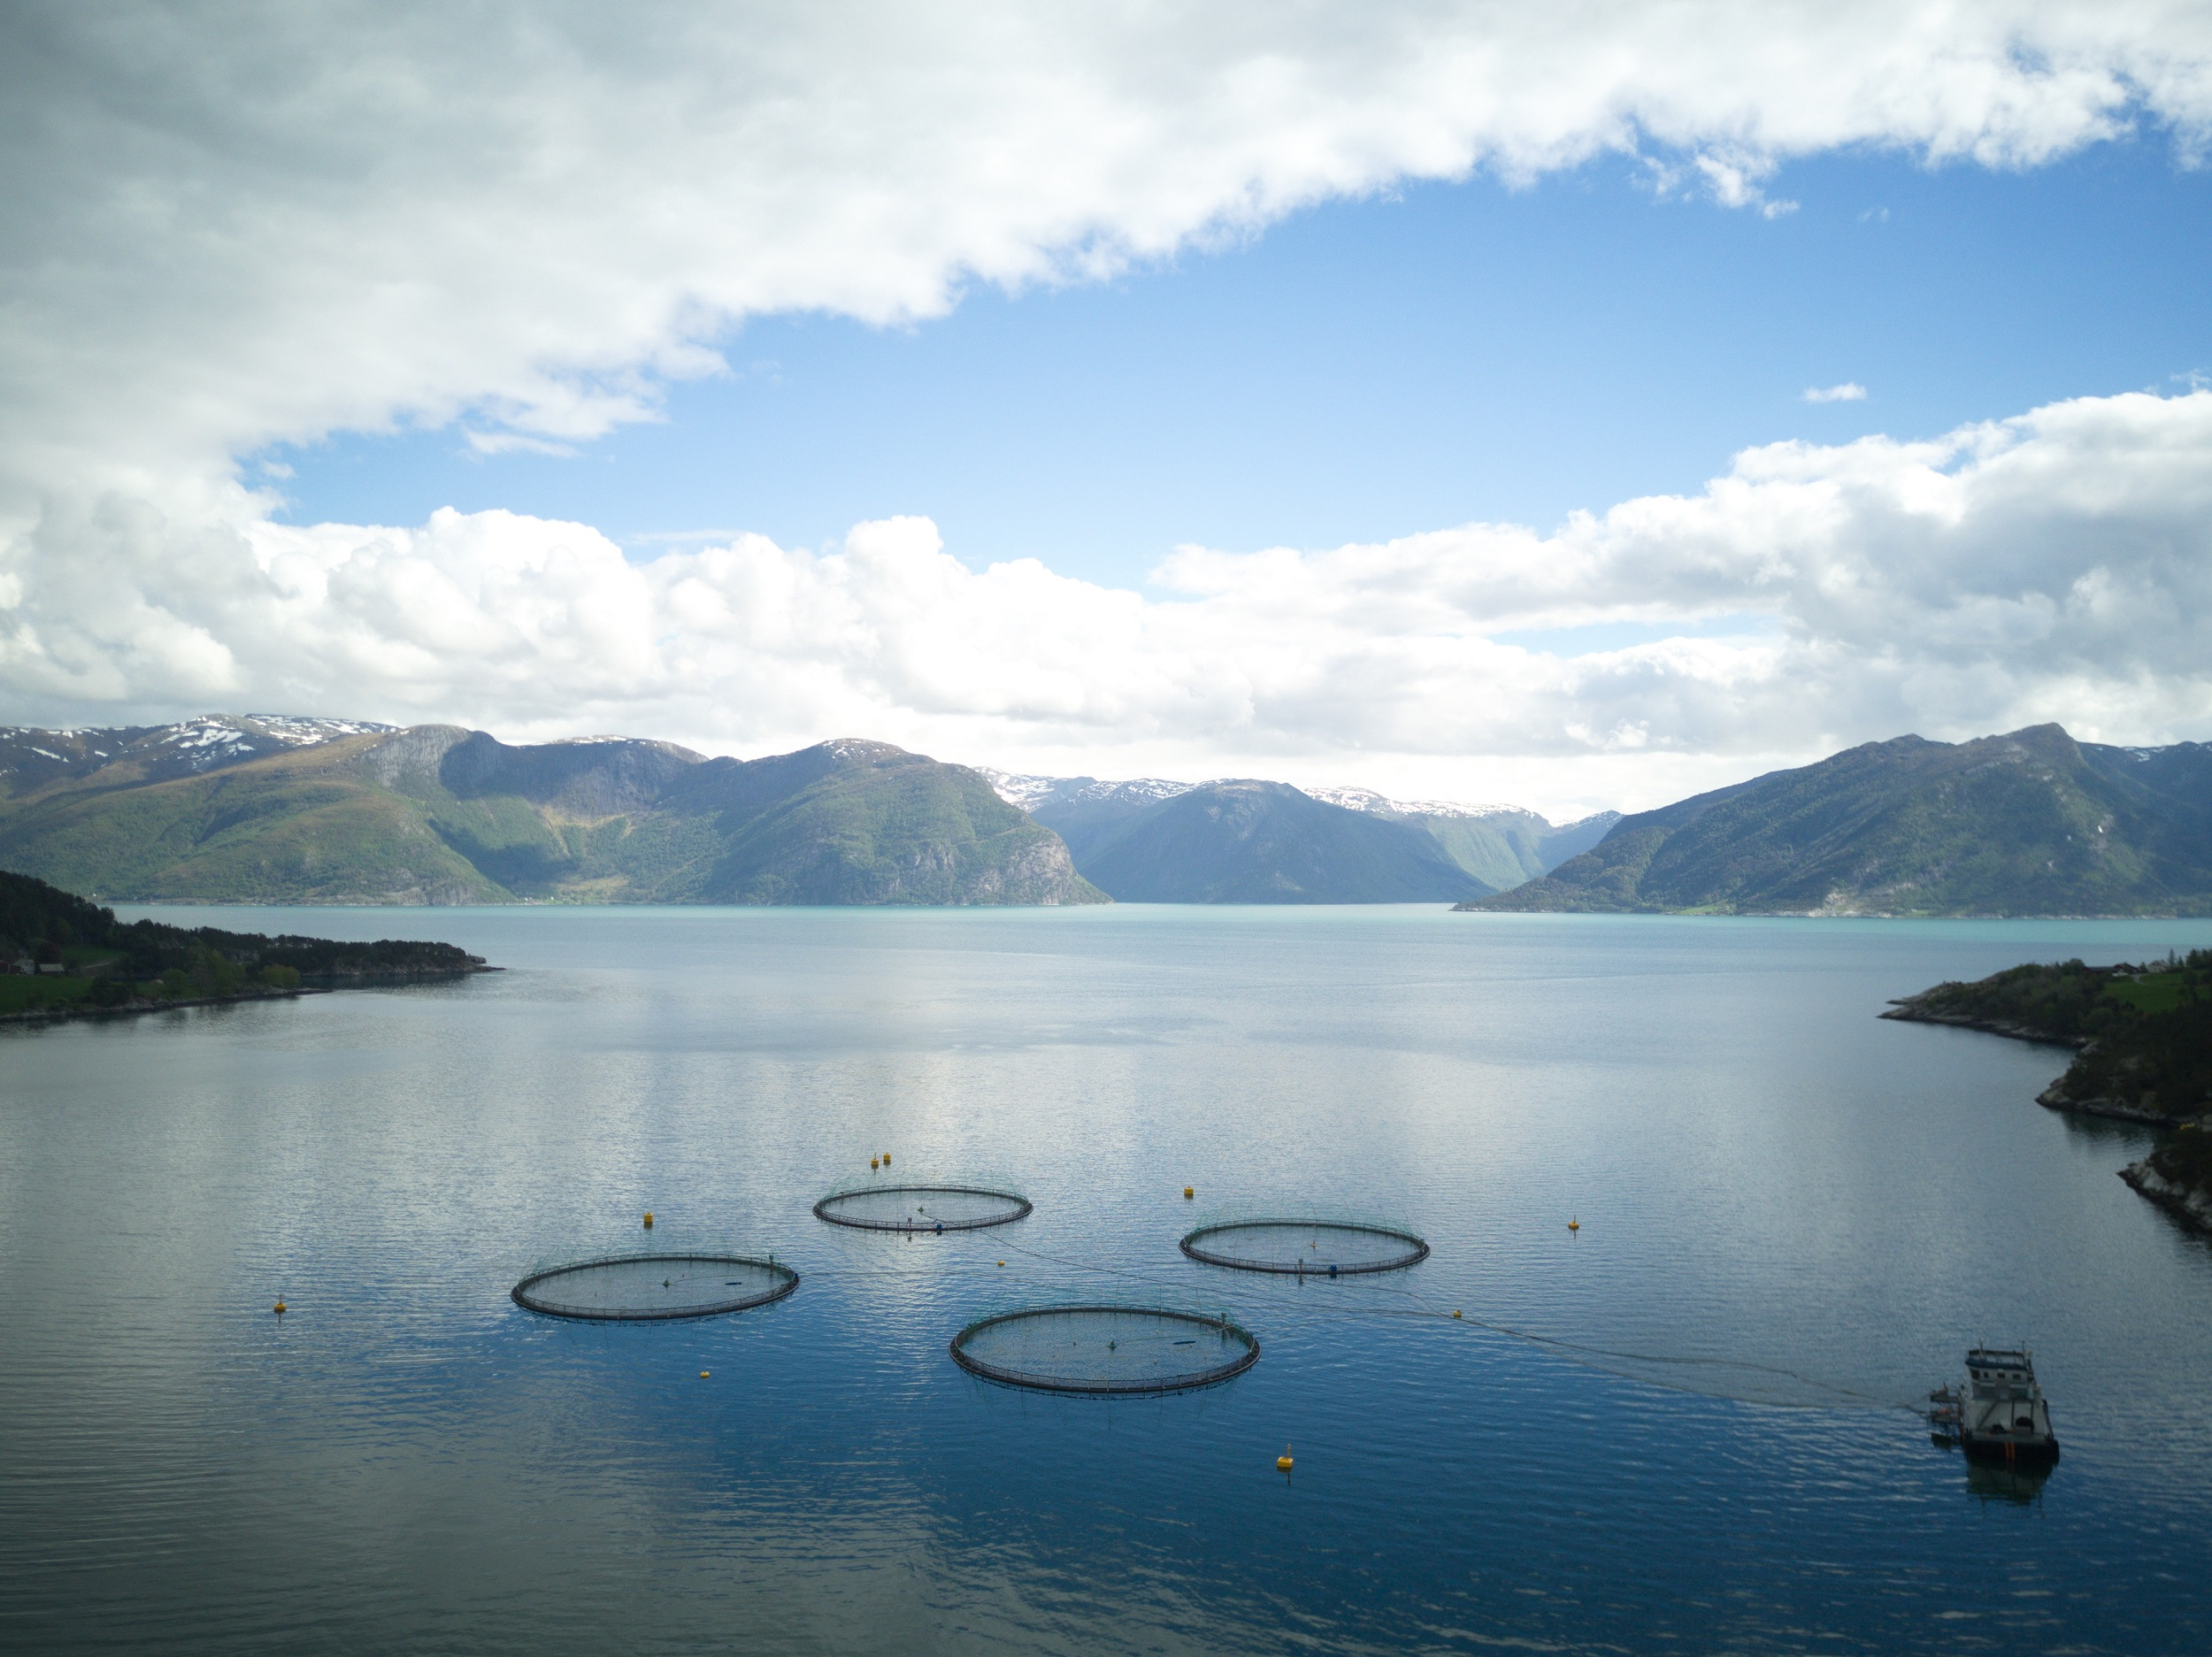 The new partnership between Atea, IBM, and Sjømatbedriftene will bring several seafood producers together to begin using blockchain (credit: Sjømatbedriftene)